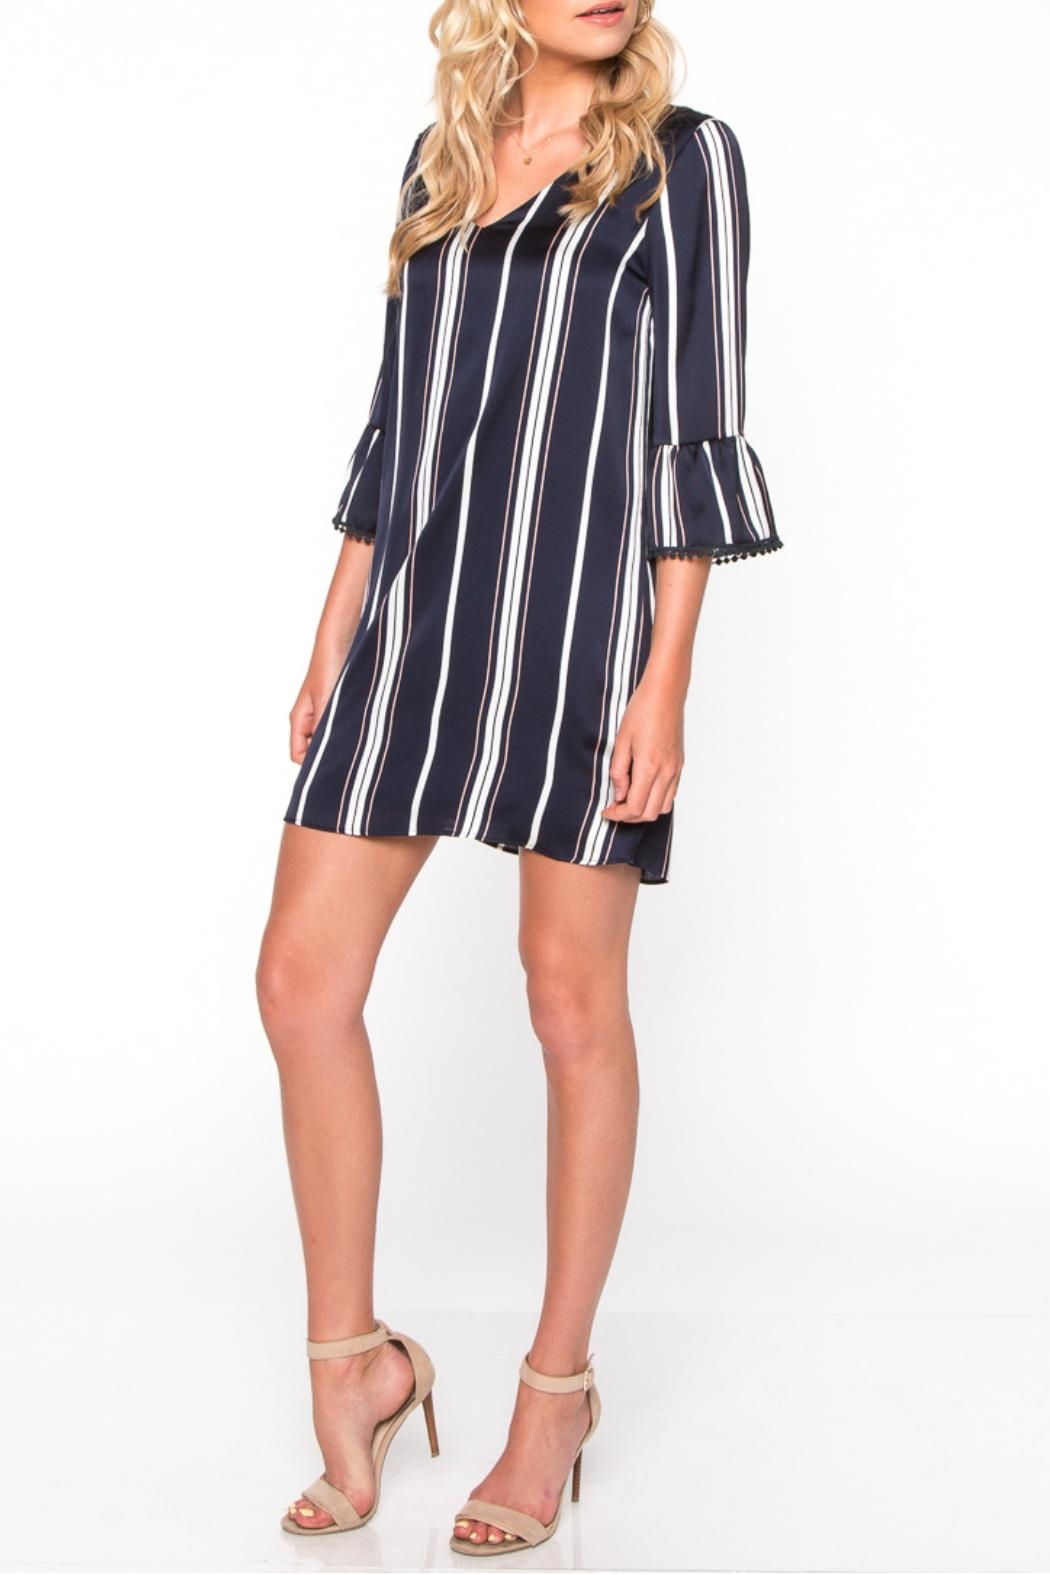 Everly Striped Pompom Dress - Front Cropped Image